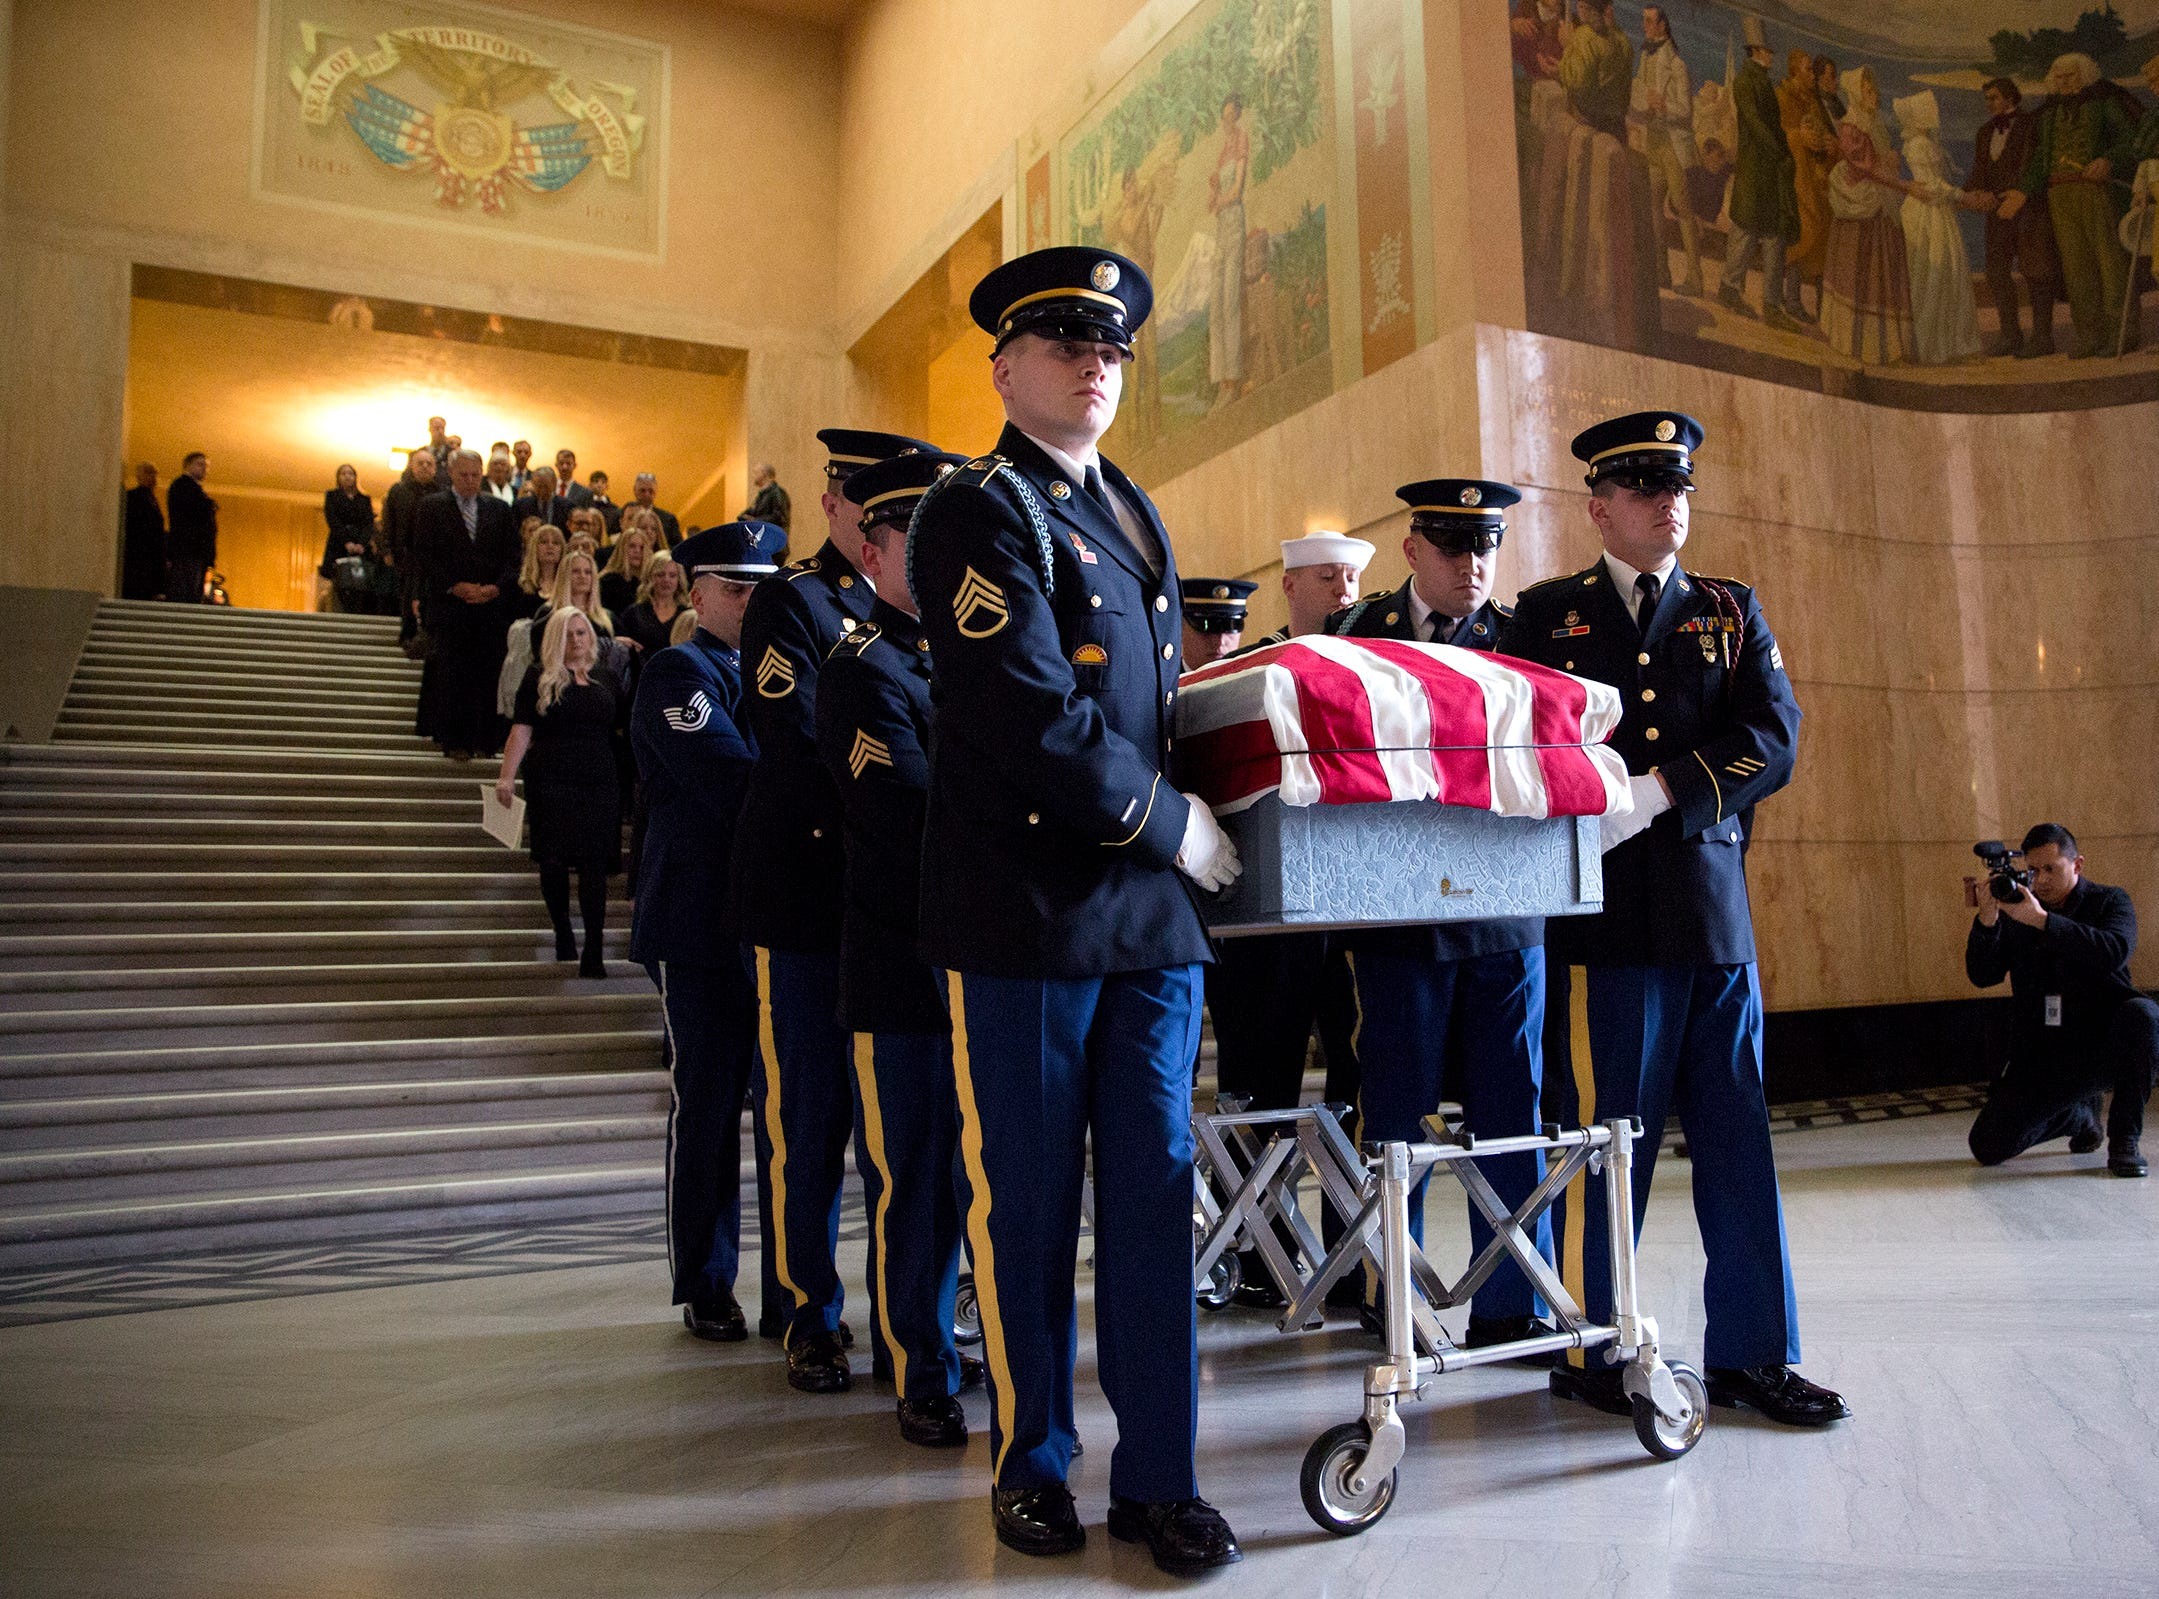 The casket is escorted to the front steps of the Capitol following the state funeral for Secretary of State Dennis Richardson at the Oregon State Capitol in Salem on Wednesday, March 6, 2019.